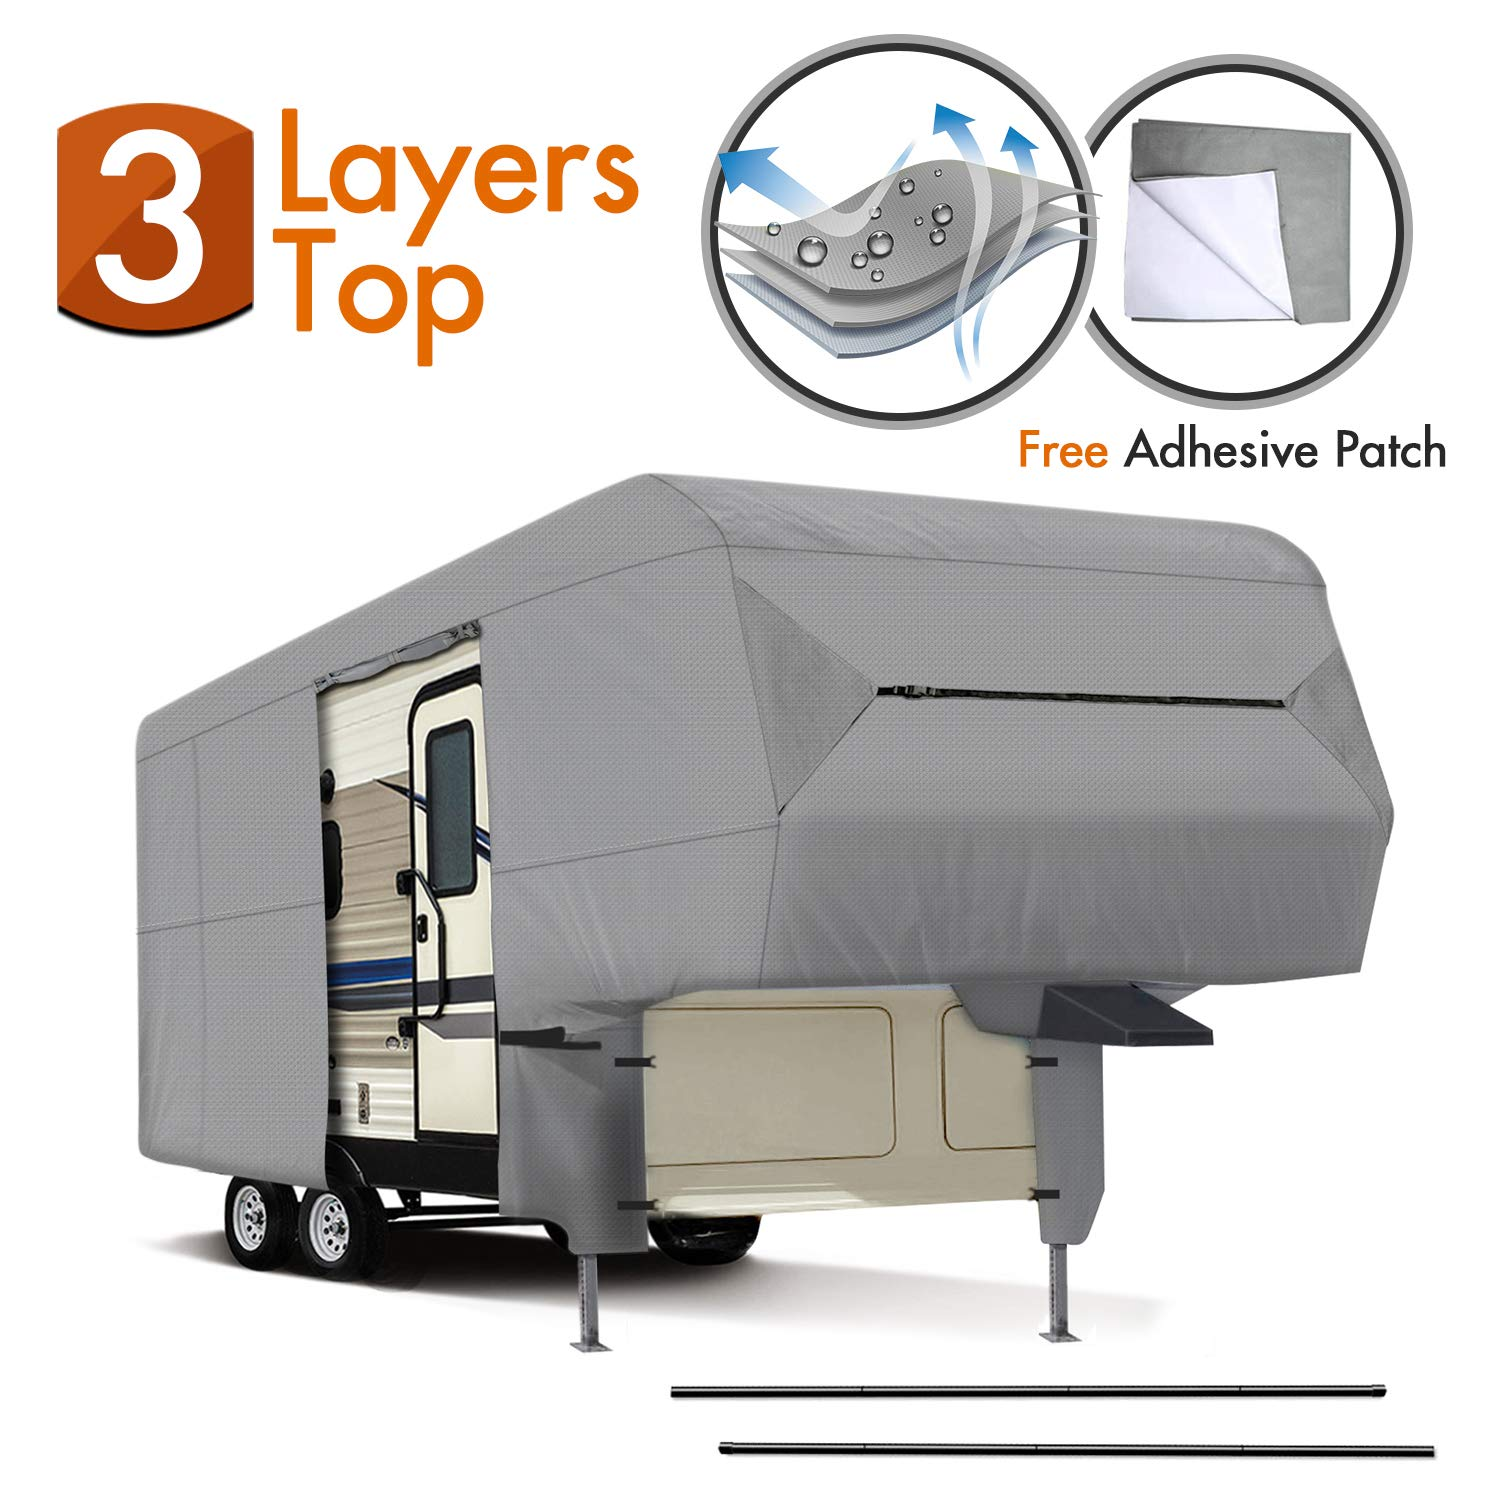 XGEAR Easy Setup 5th Wheel rv Cover 29'-33' Thick 3-Ply Top Panel - Ripstop Waterproof RVs Covers with a Pair of Assist Steel Pole by XGEAR